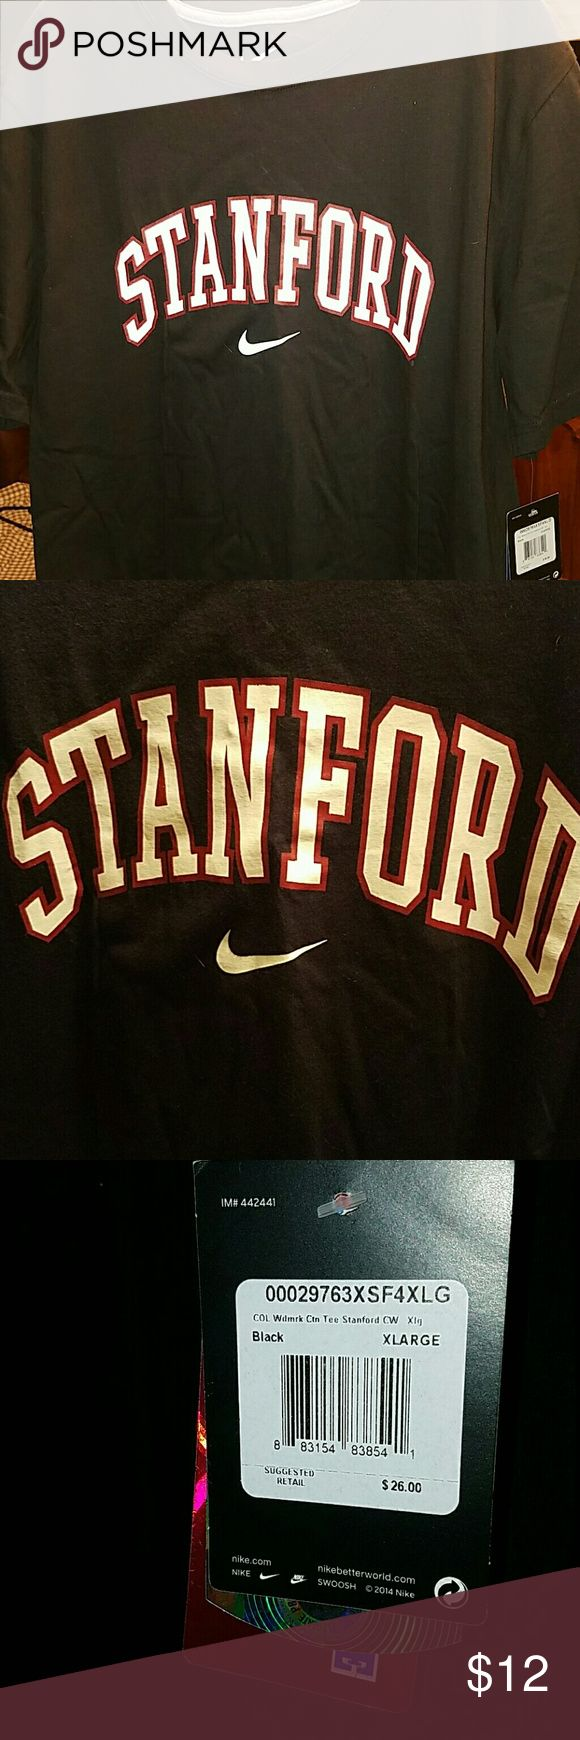 Nike Stanford University t-shirt New with tags men's Nike Stanford  t-shirt! Nike Shirts Tees - Short Sleeve